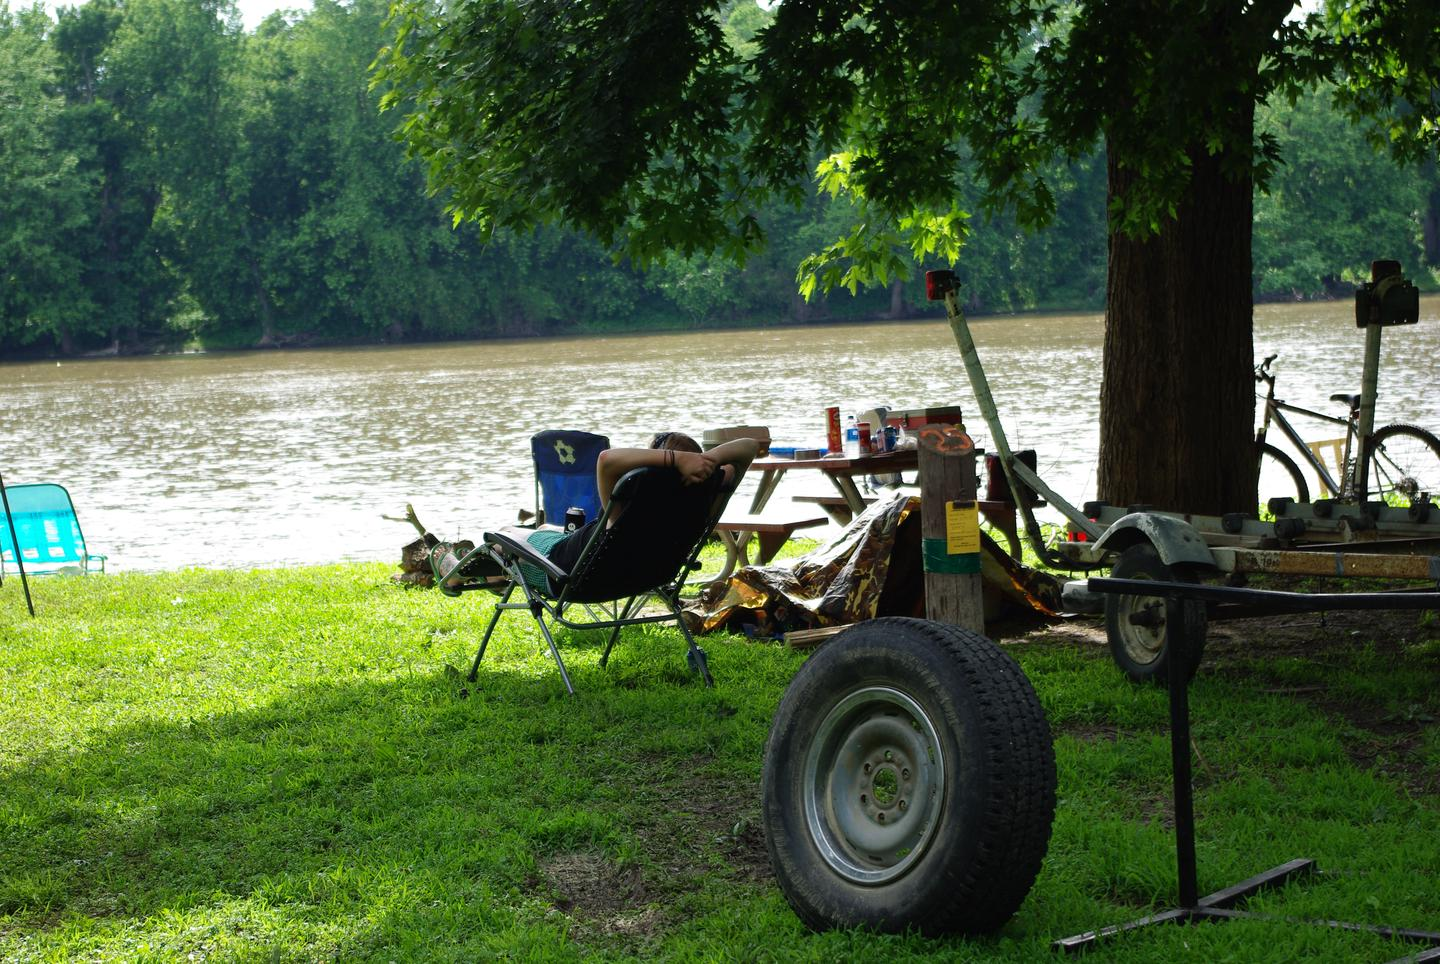 Lounge Chair overlooking the river.